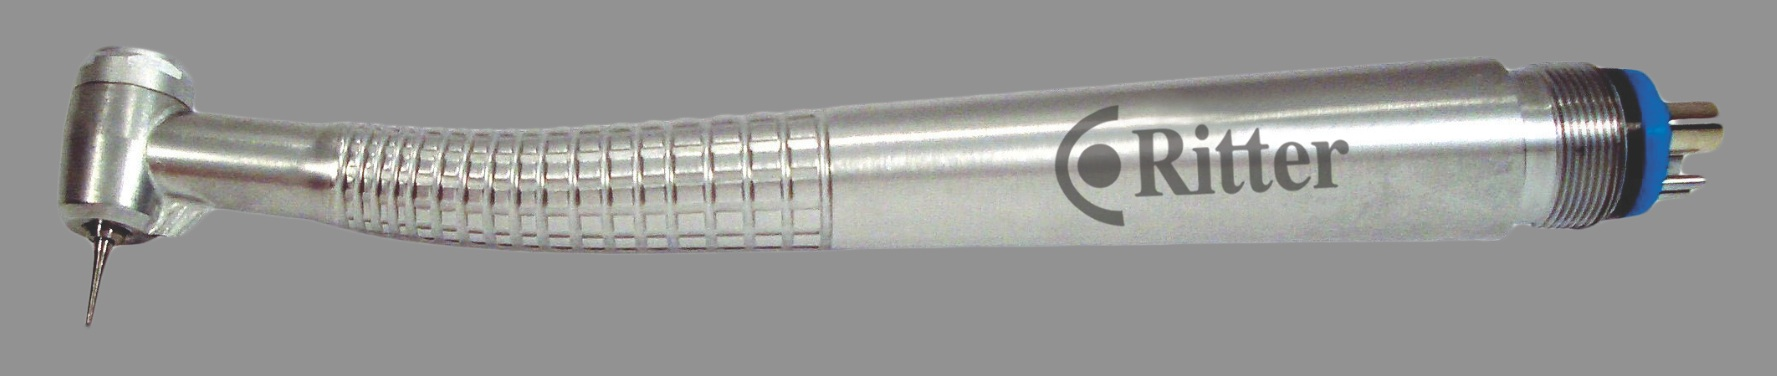 Ritter Dental Expanded Handpiece Line